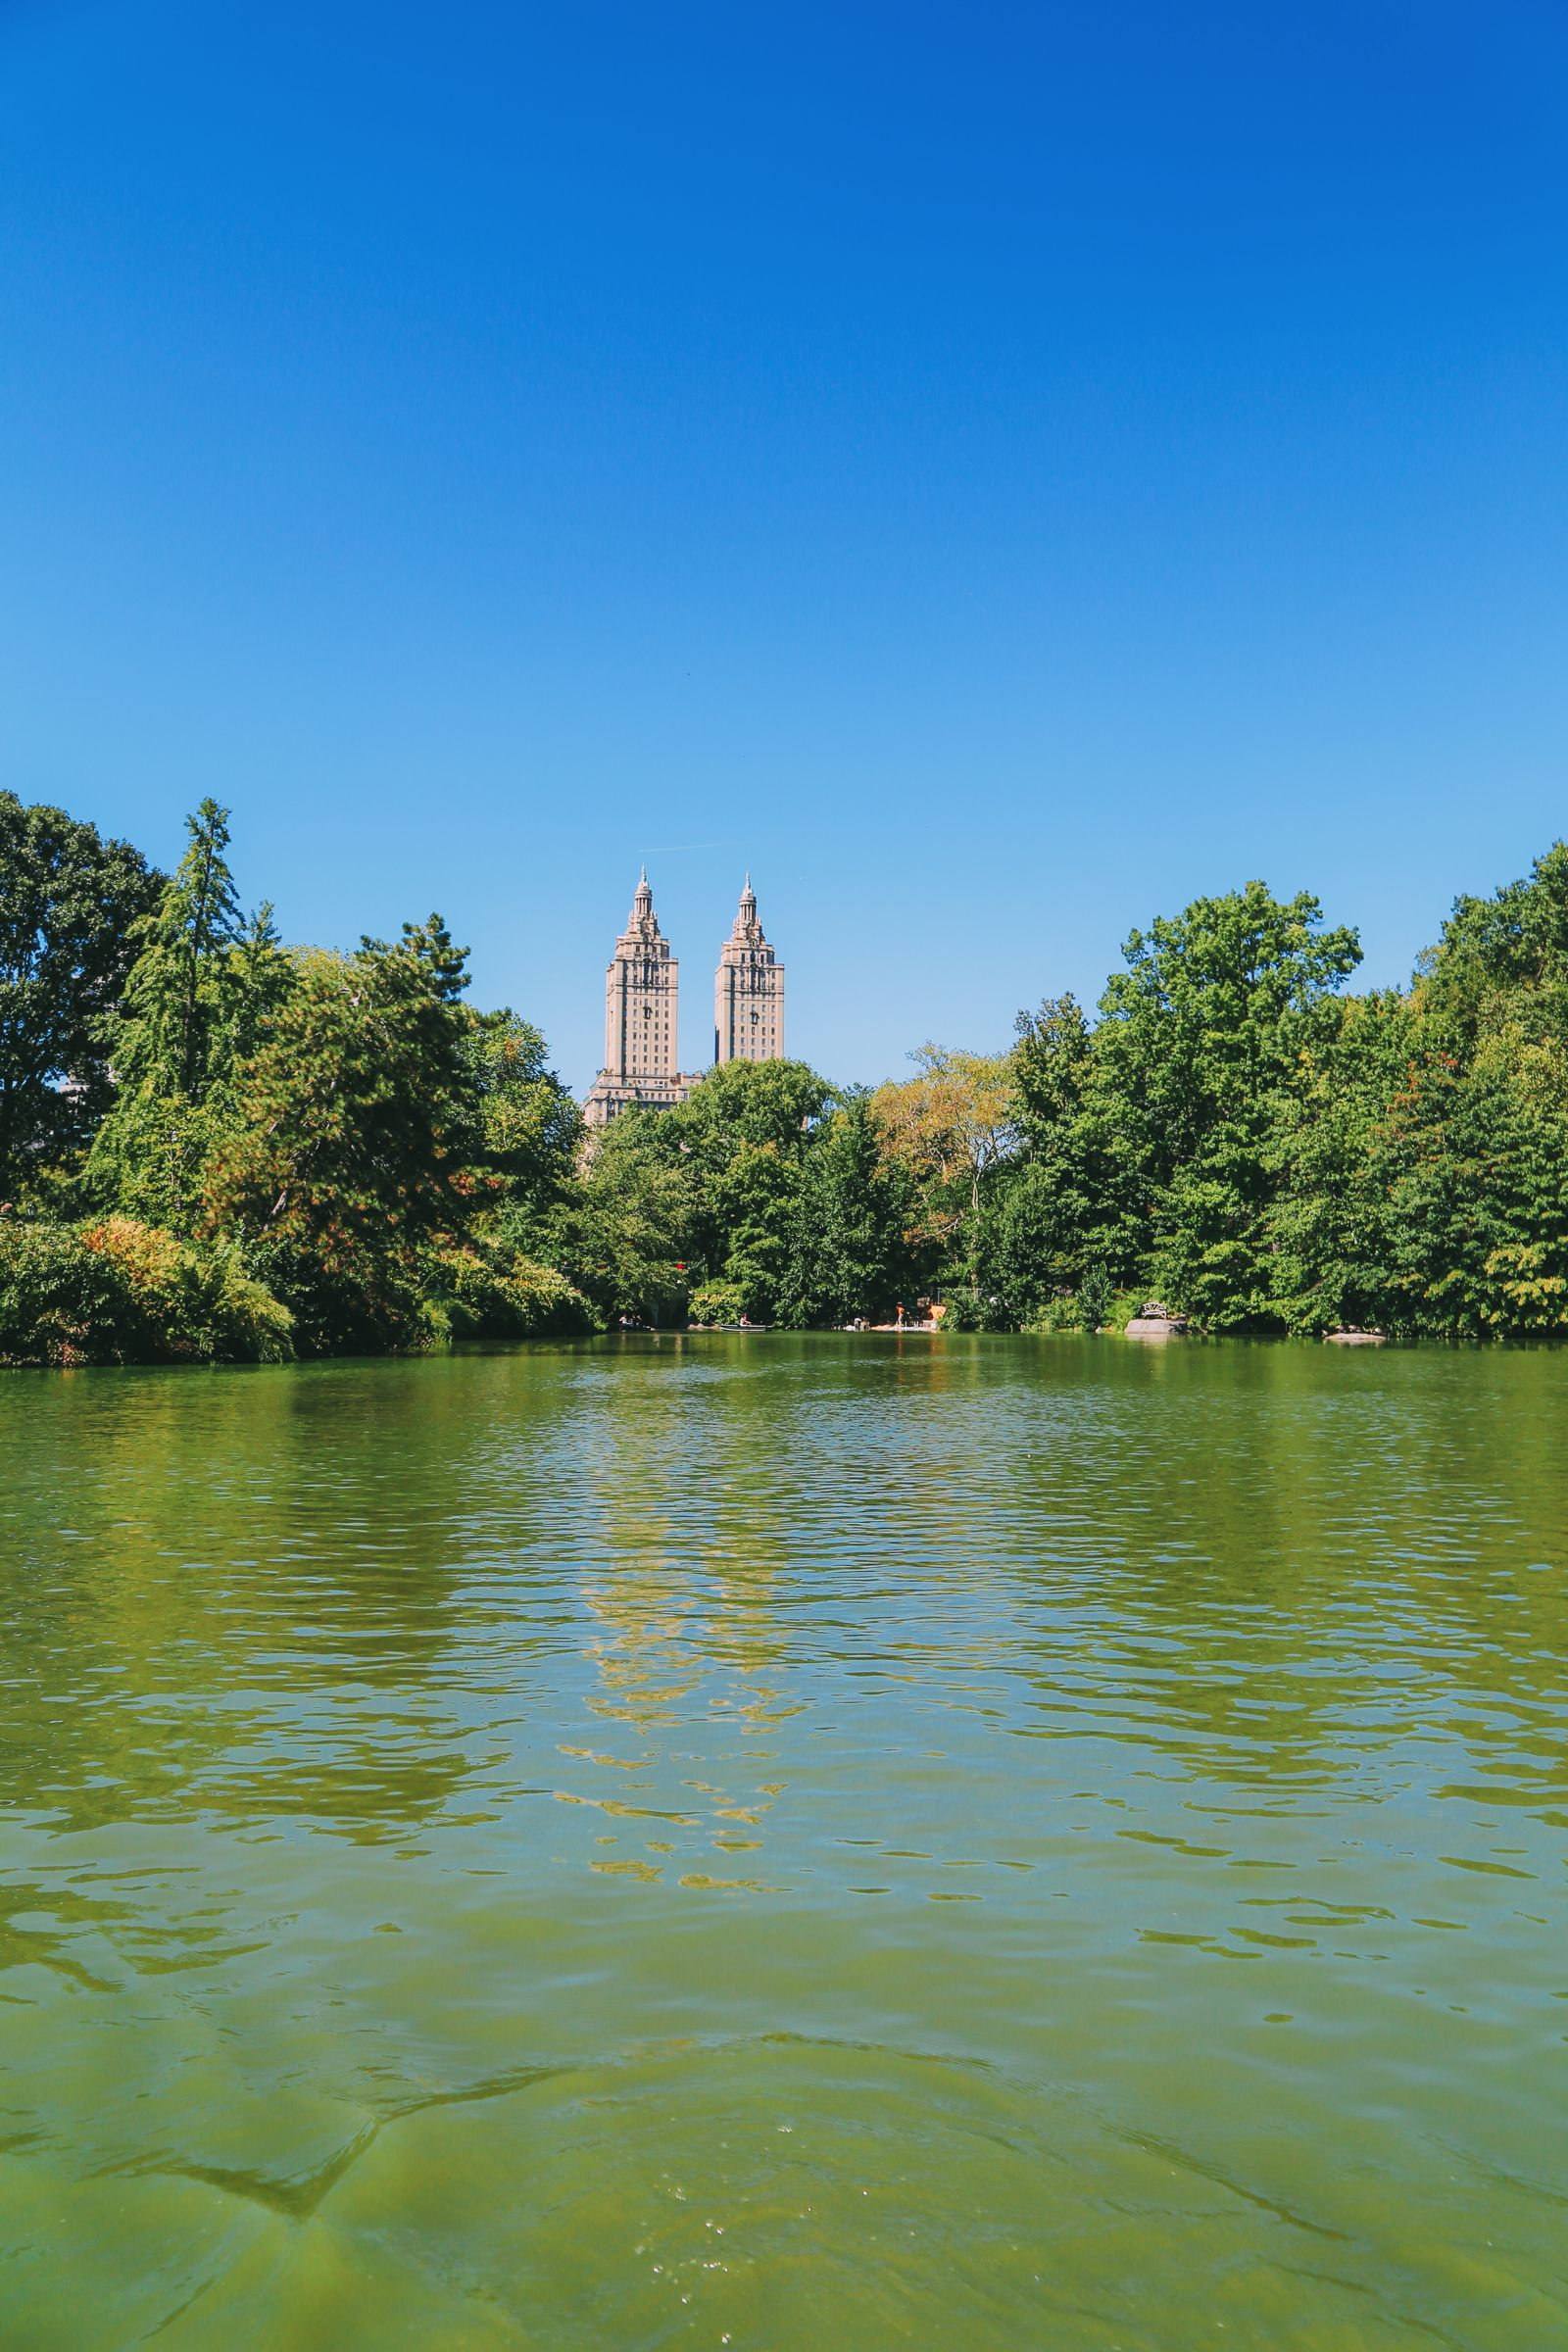 Boating at the Loeb Boathouse in Central Park, New York City (14)